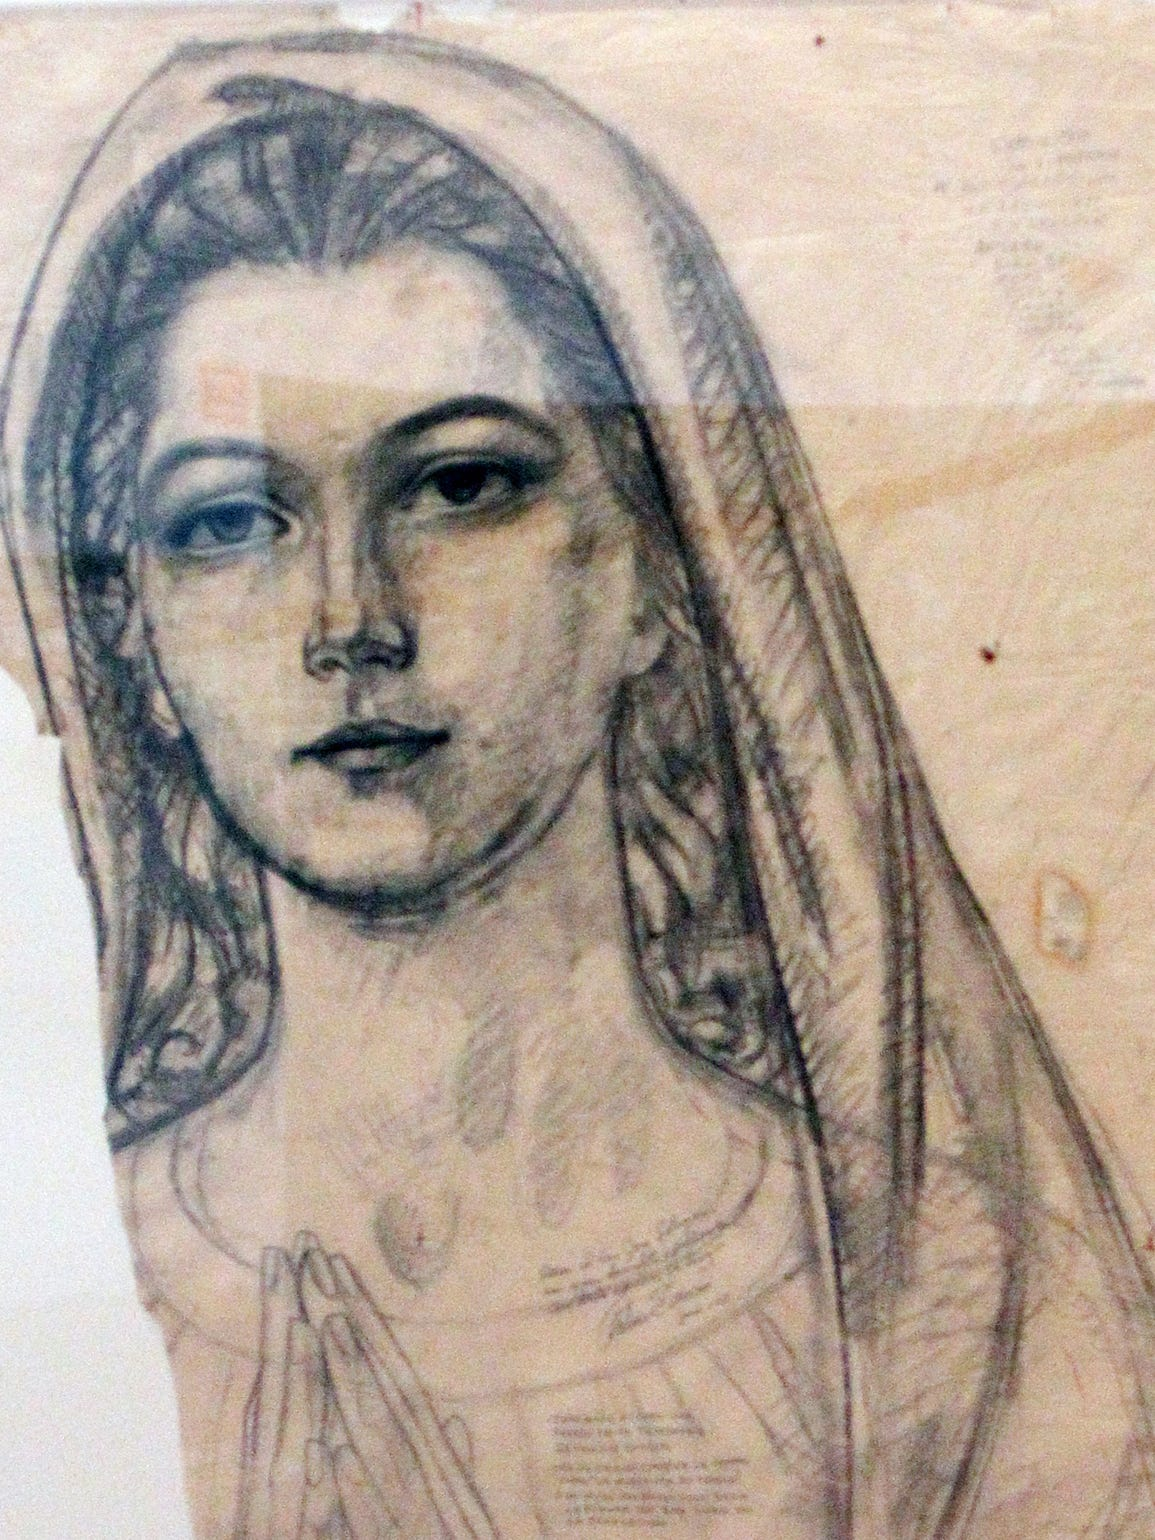 This artwork of the Madonna is one of three artworks